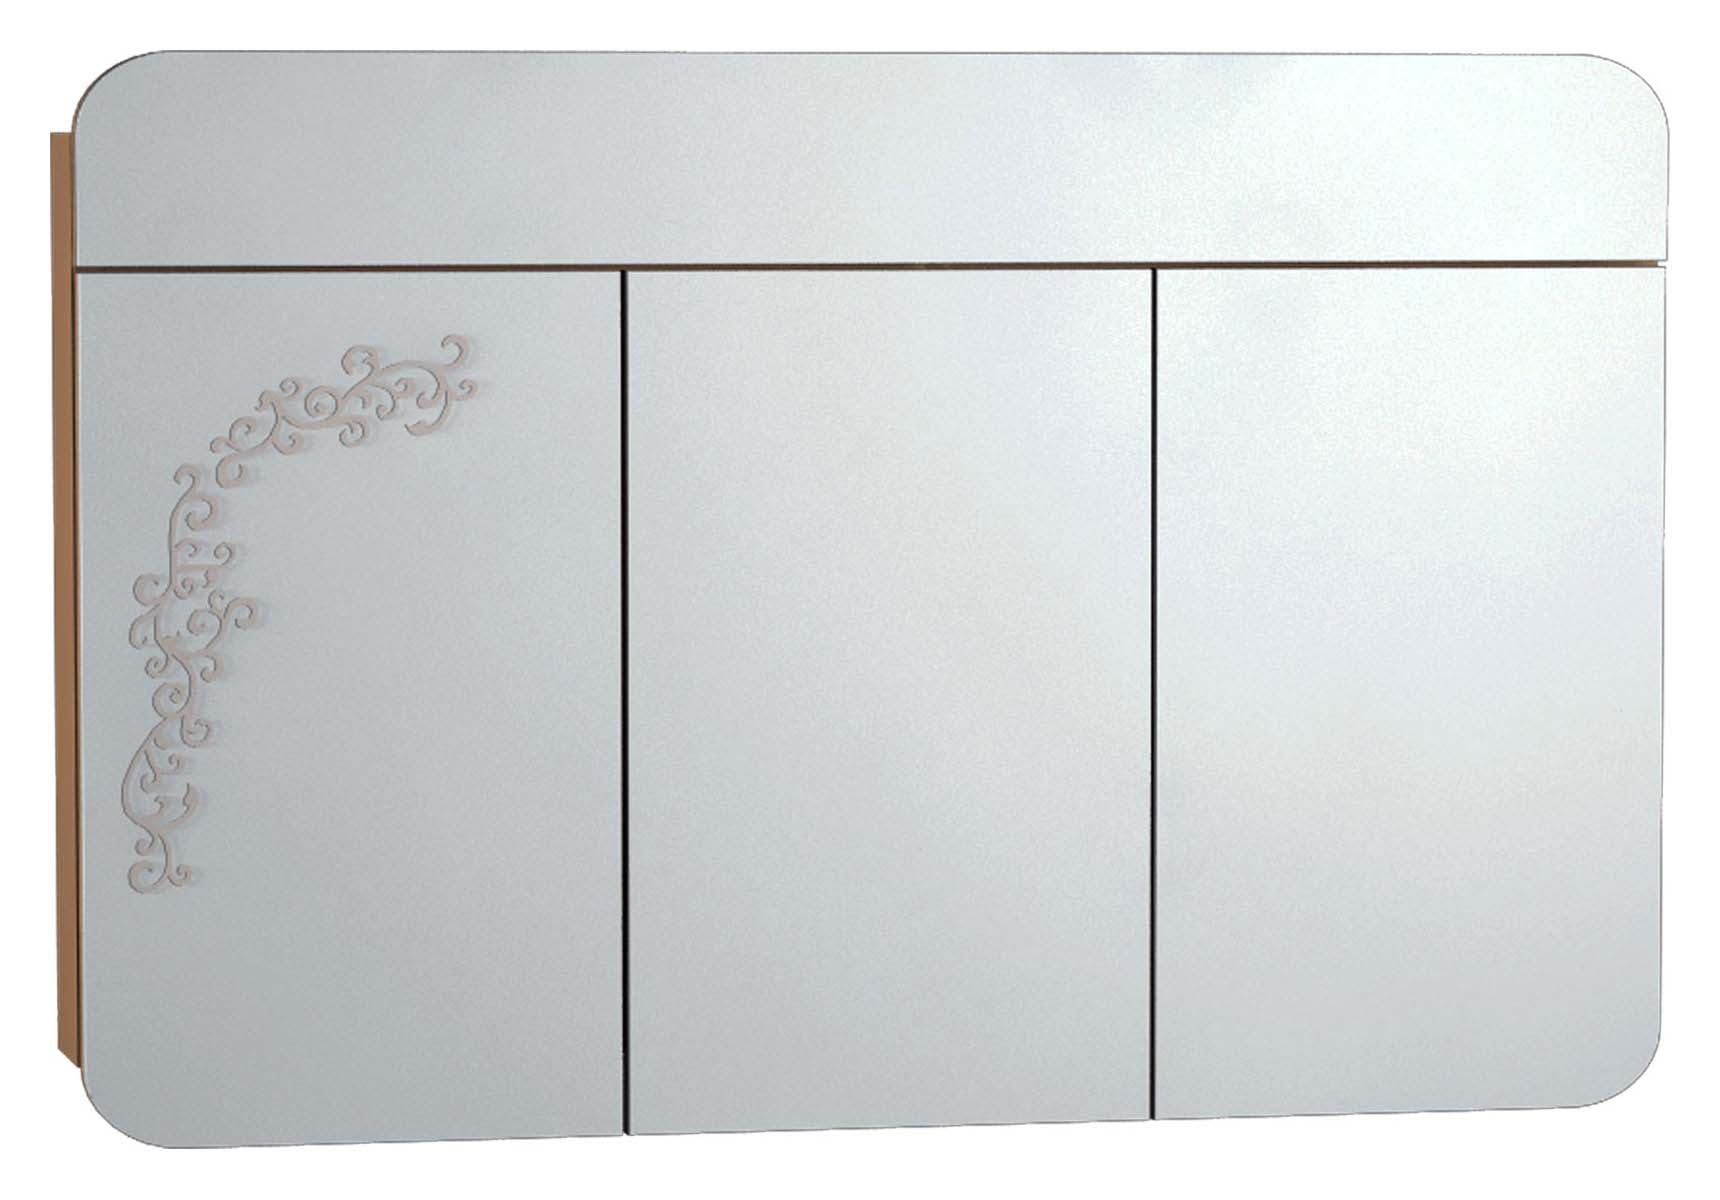 Gala Classic Illuminated Mirror with Pattern Cabinet 120 cm Beige High Gloss